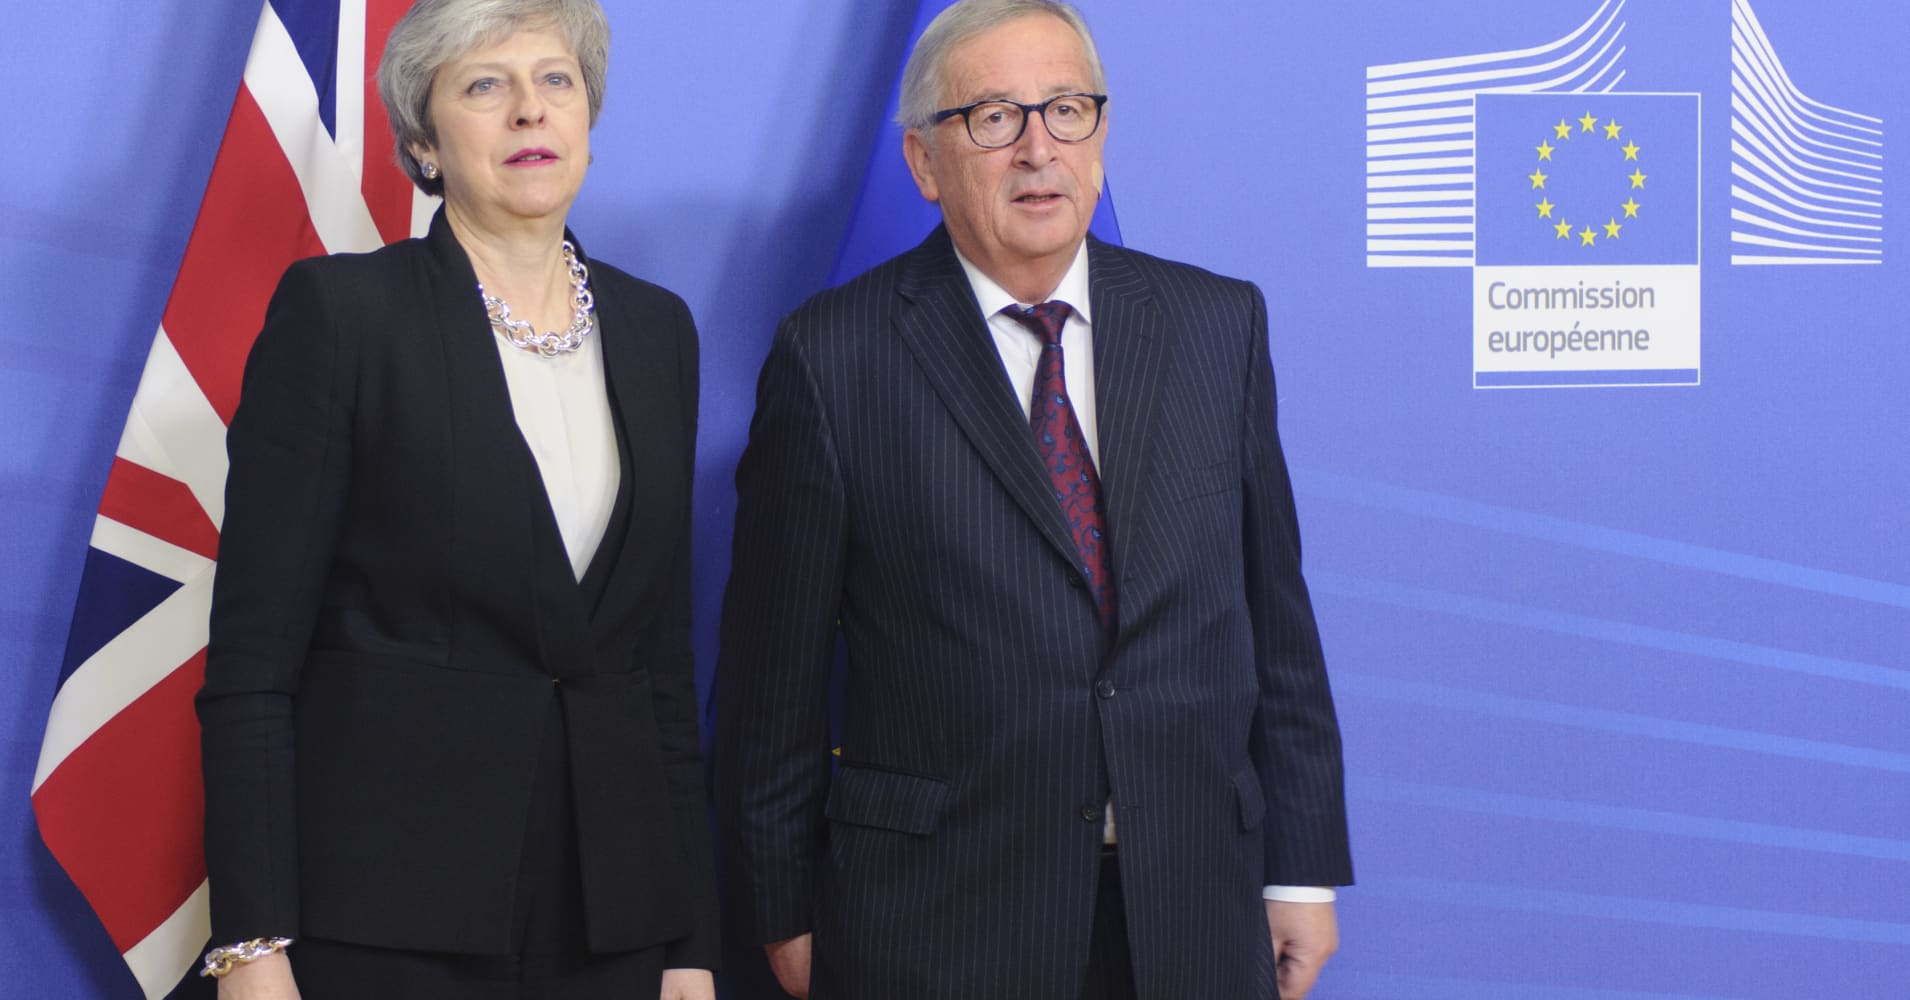 EU's Juncker 'not very optimistic' on Brexit deal after meeting with UK leader May